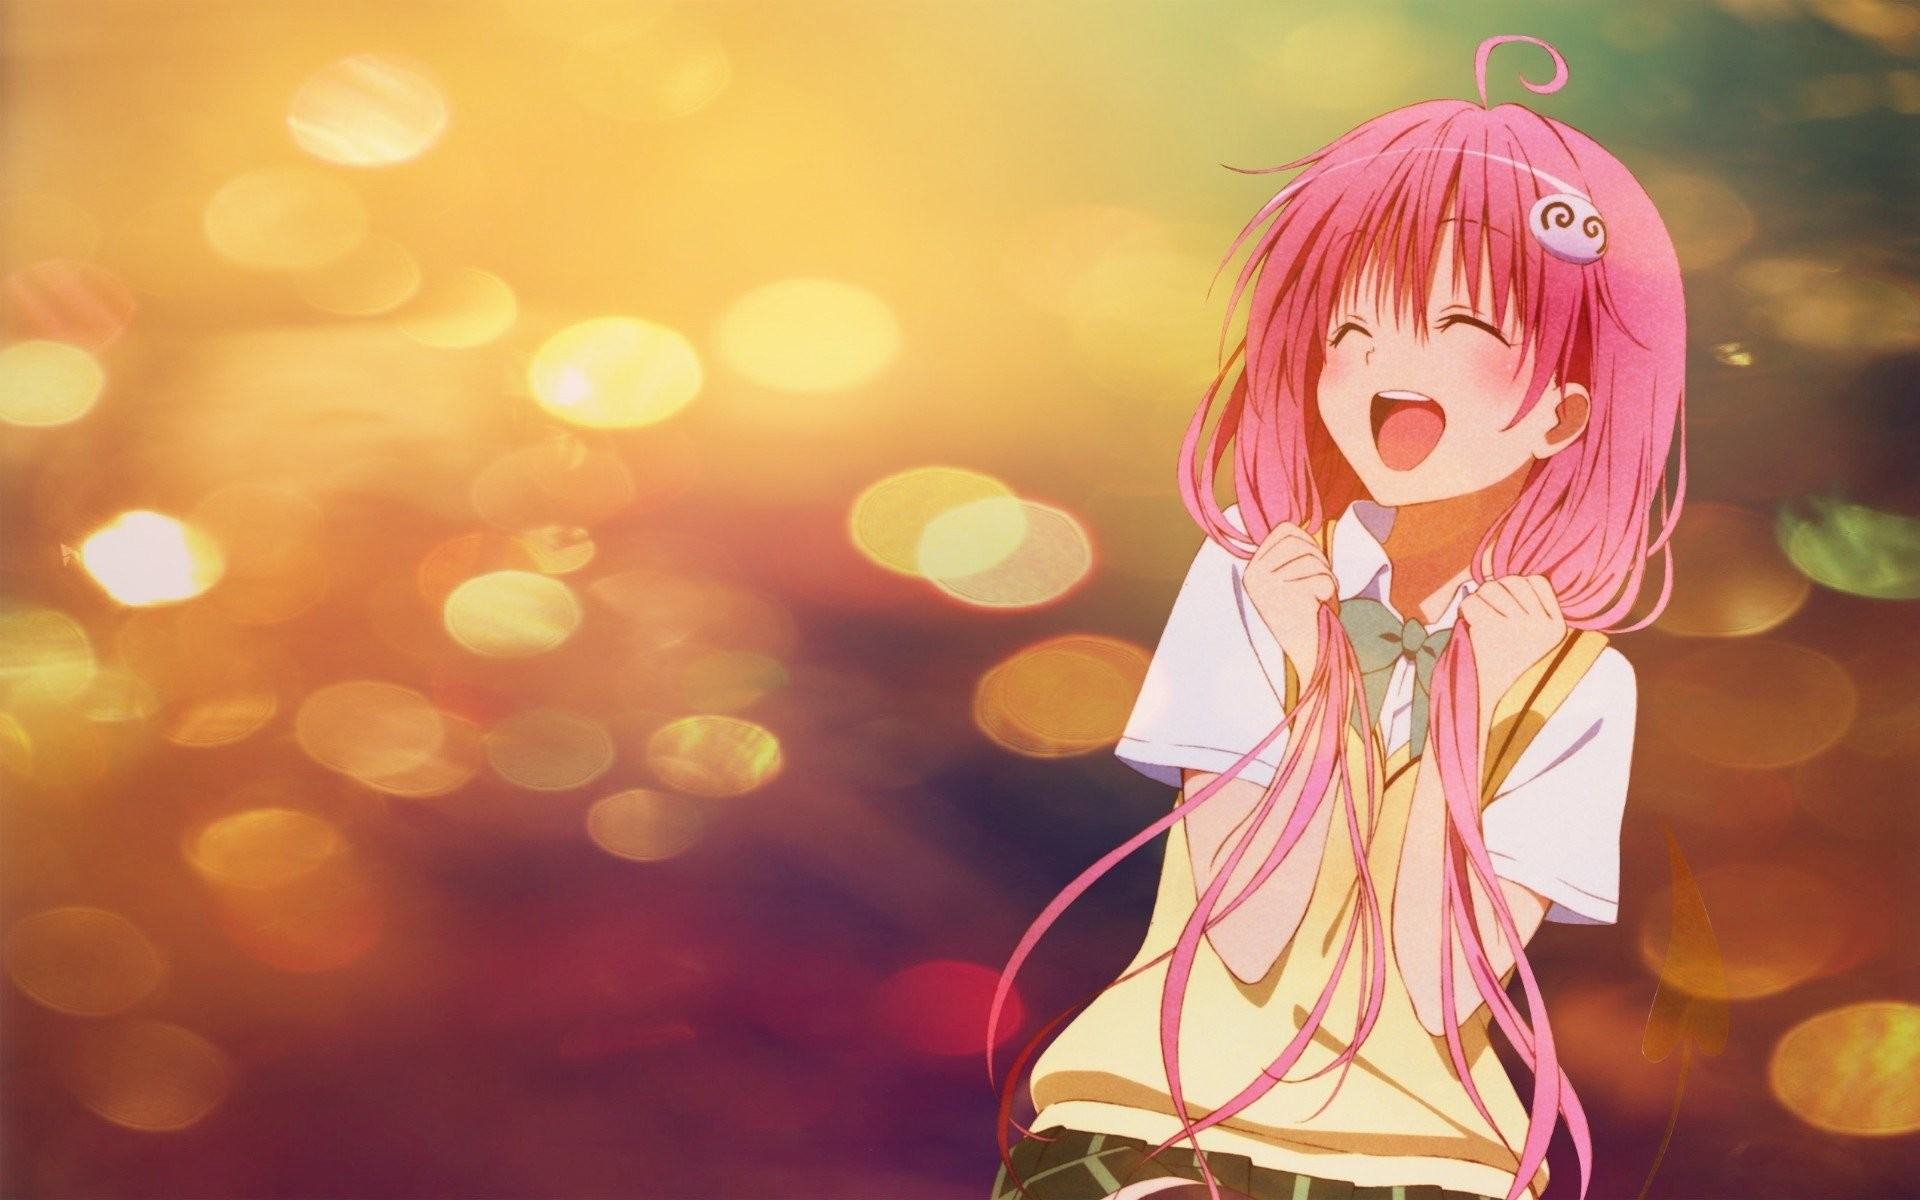 1920x1200 Anime - To Love-Ru Lala Satalin Deviluke Wallpaper